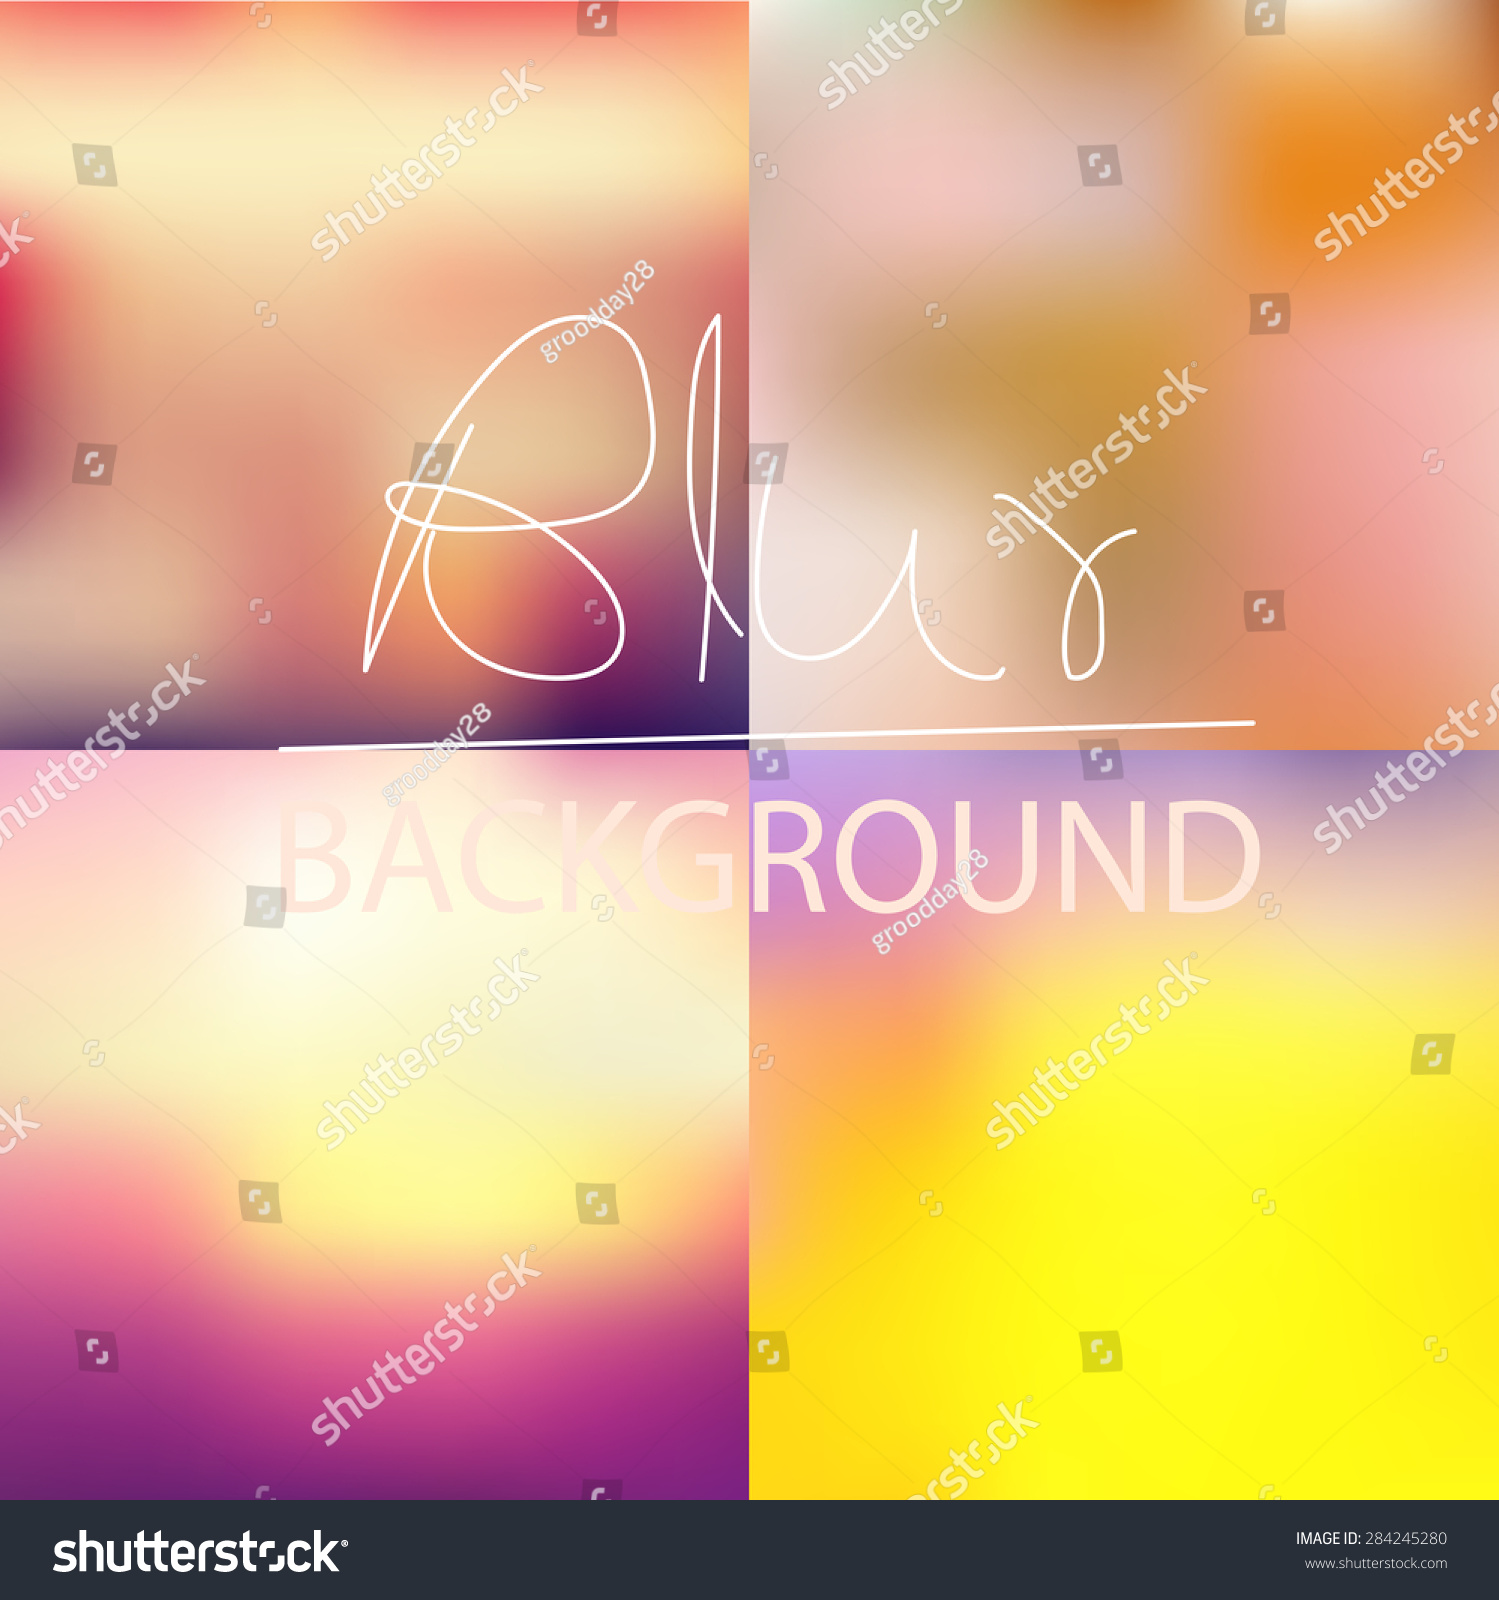 Vector Illustration Instagram: Soft Blurred Abstract Background Set Collection Stock